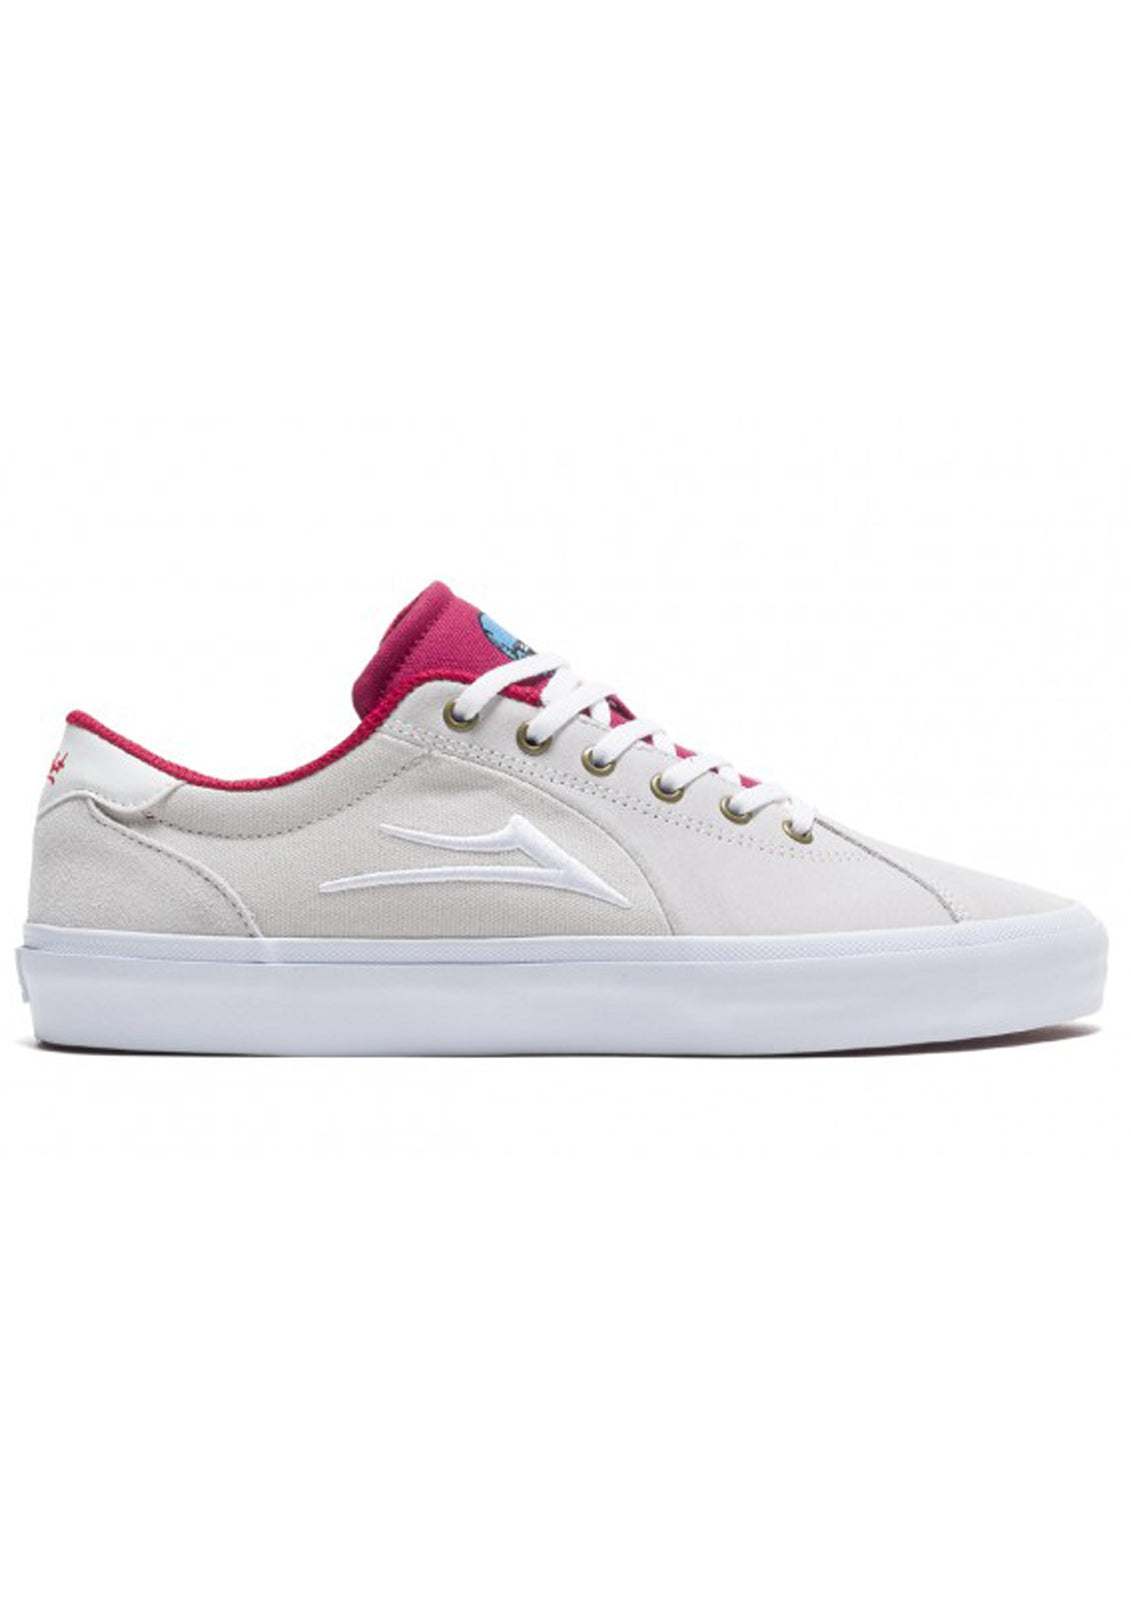 Lakai Flaco 2 X Glaboe Shoes